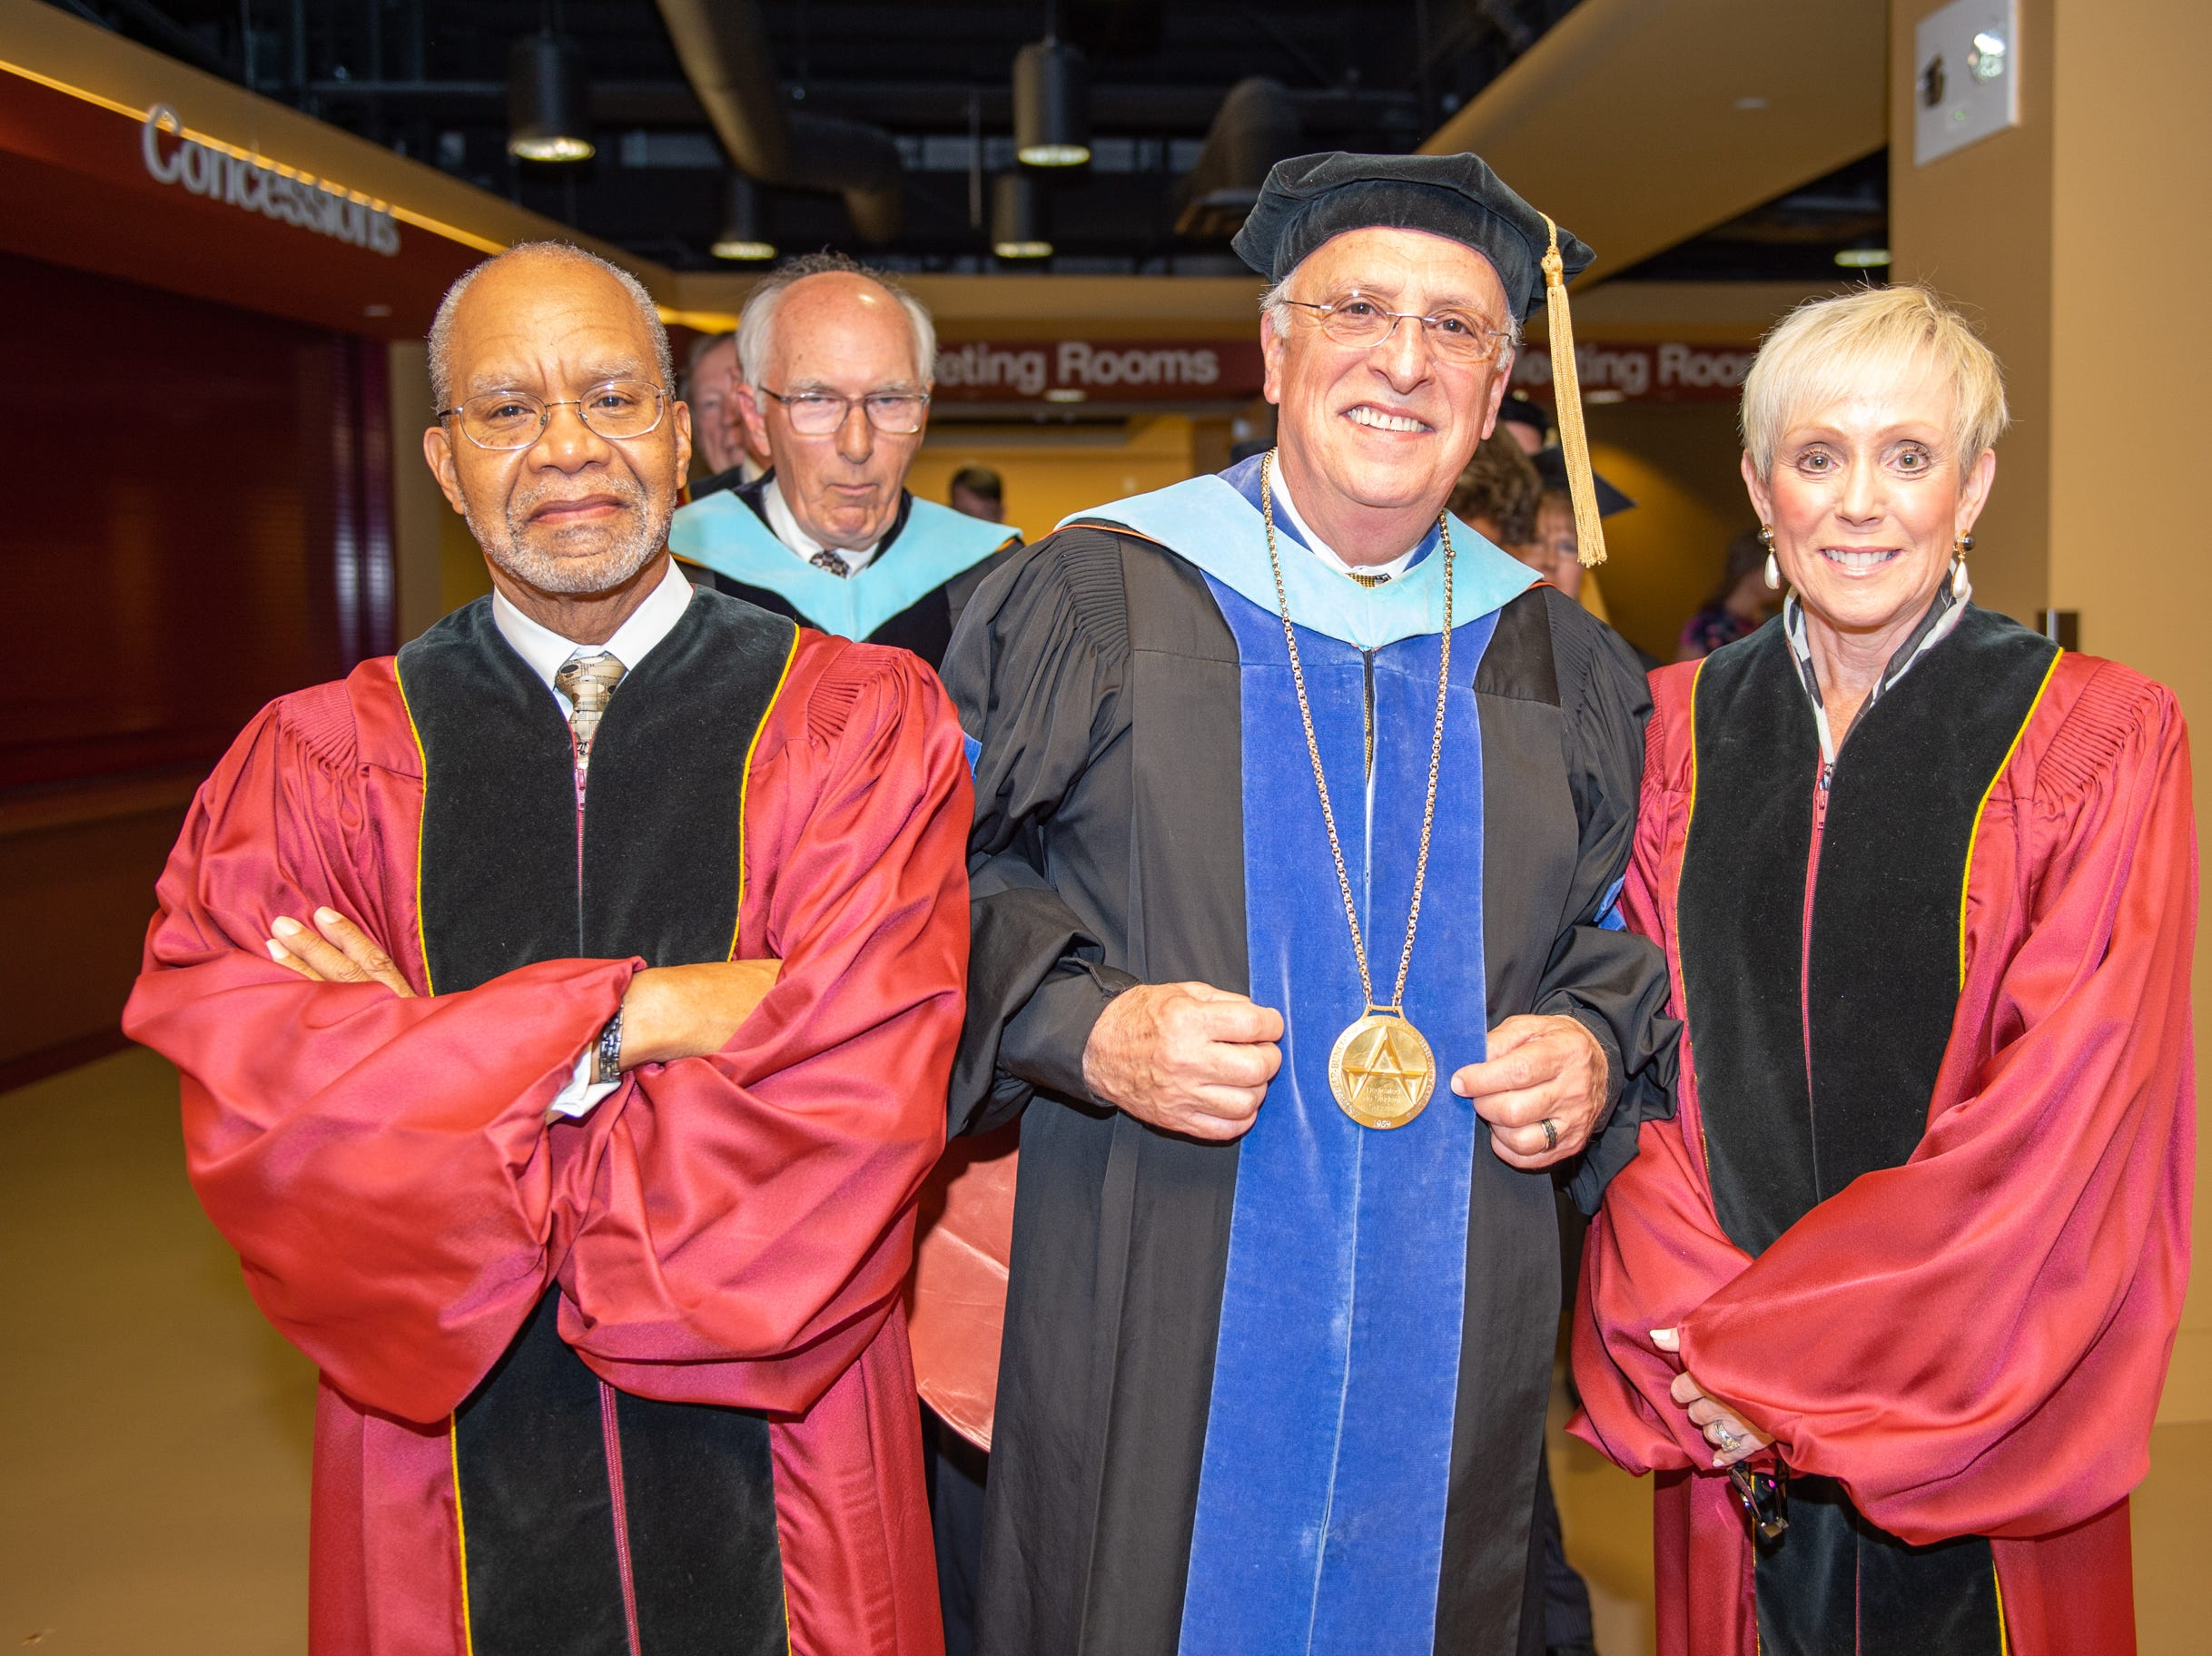 John Parham, Vice Chair, Dr. Dennis King, President, and Board Chair Mary Ann Rice lining up before the graduating ceremony on May 11, 2019